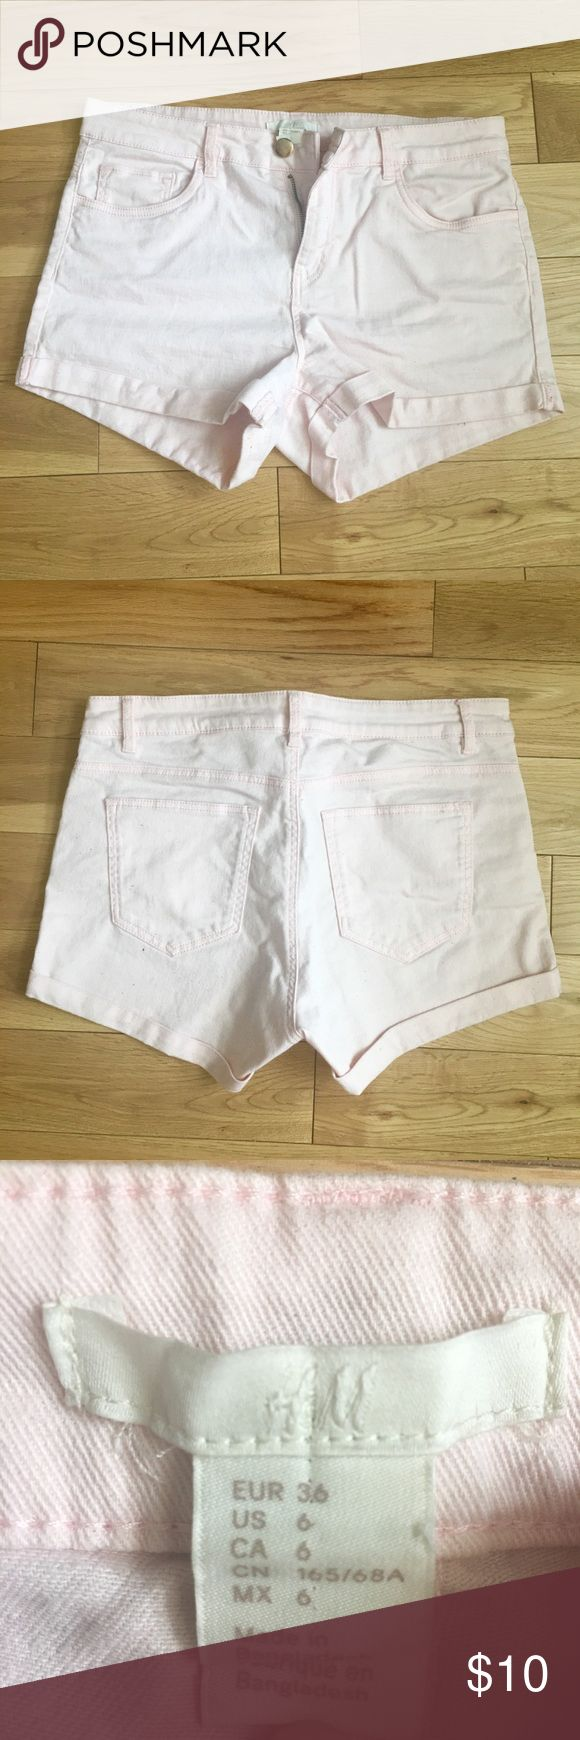 Light Pink Shorts Light Pink Shorts from H&M. Worn a couple of times but still in good condition. 😁 H&M Shorts Jean Shorts